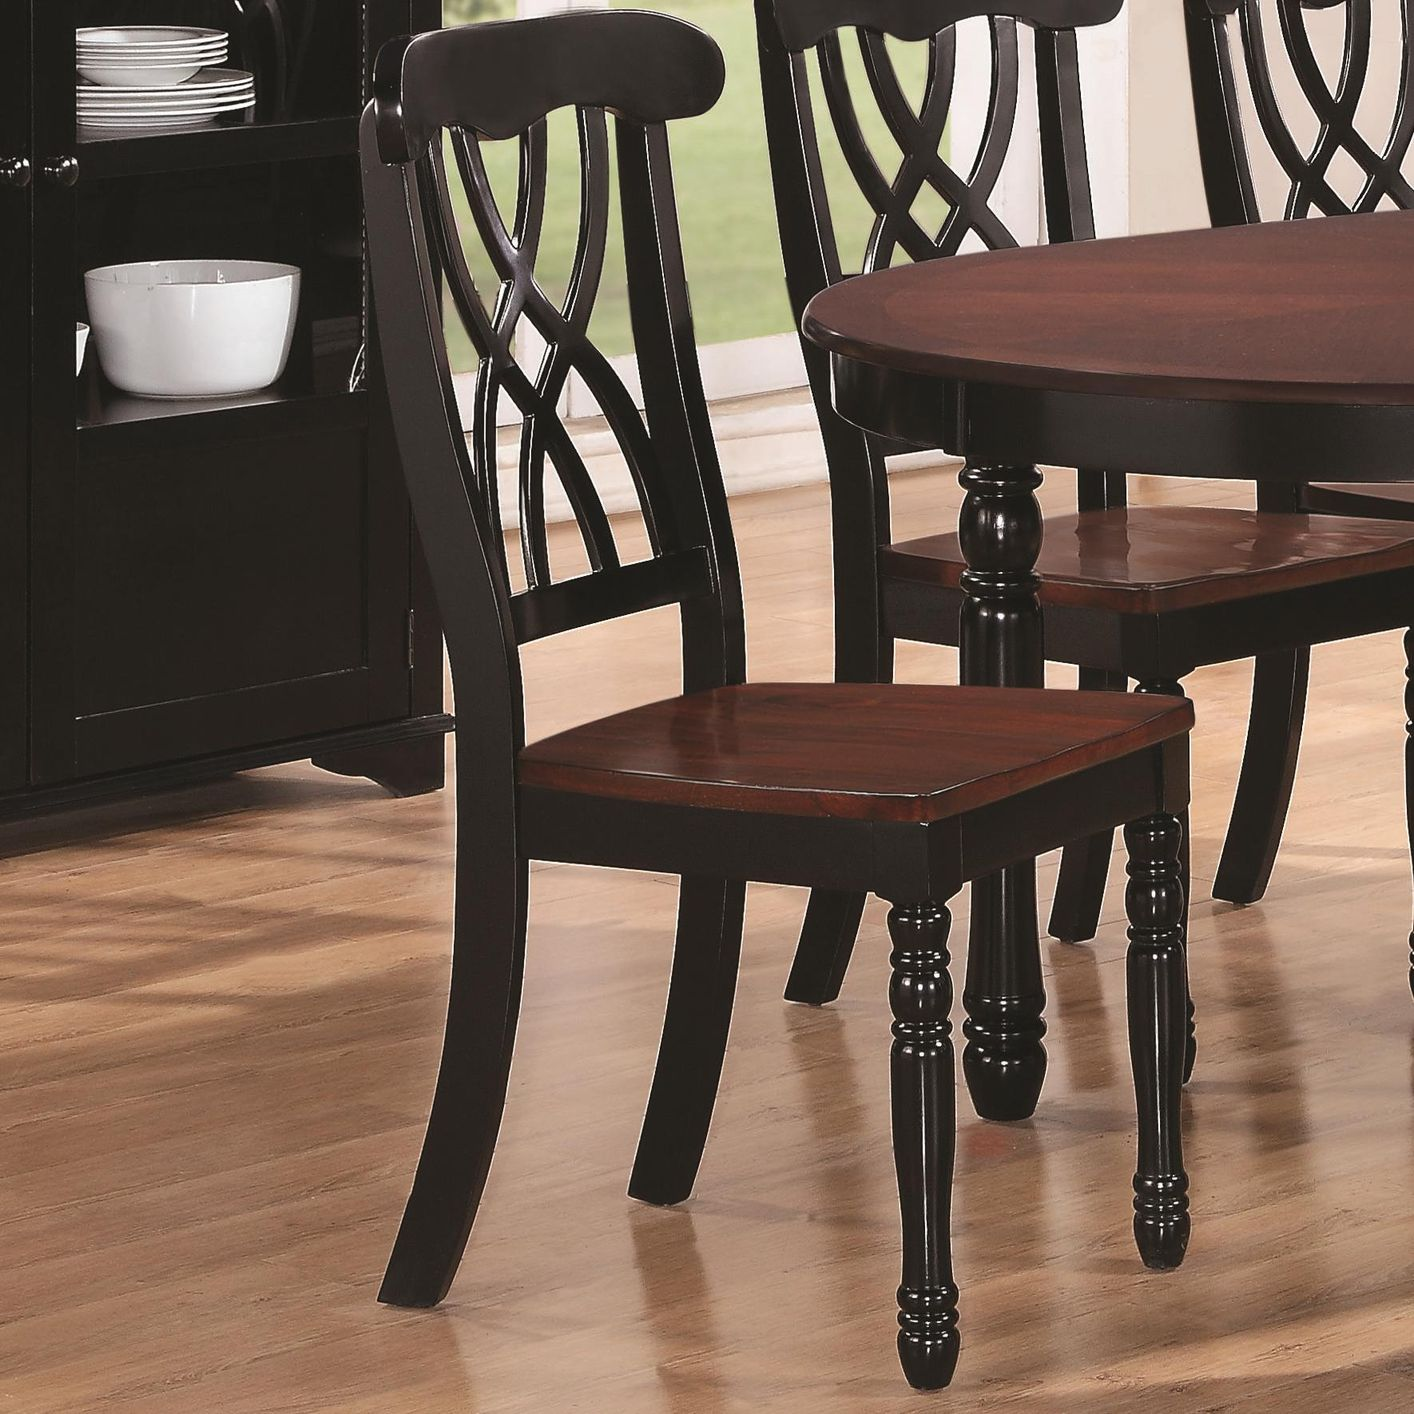 Cherry Wood Dining Chairs Addison Black And Cherry Wood Dining Chair Min Qty 2